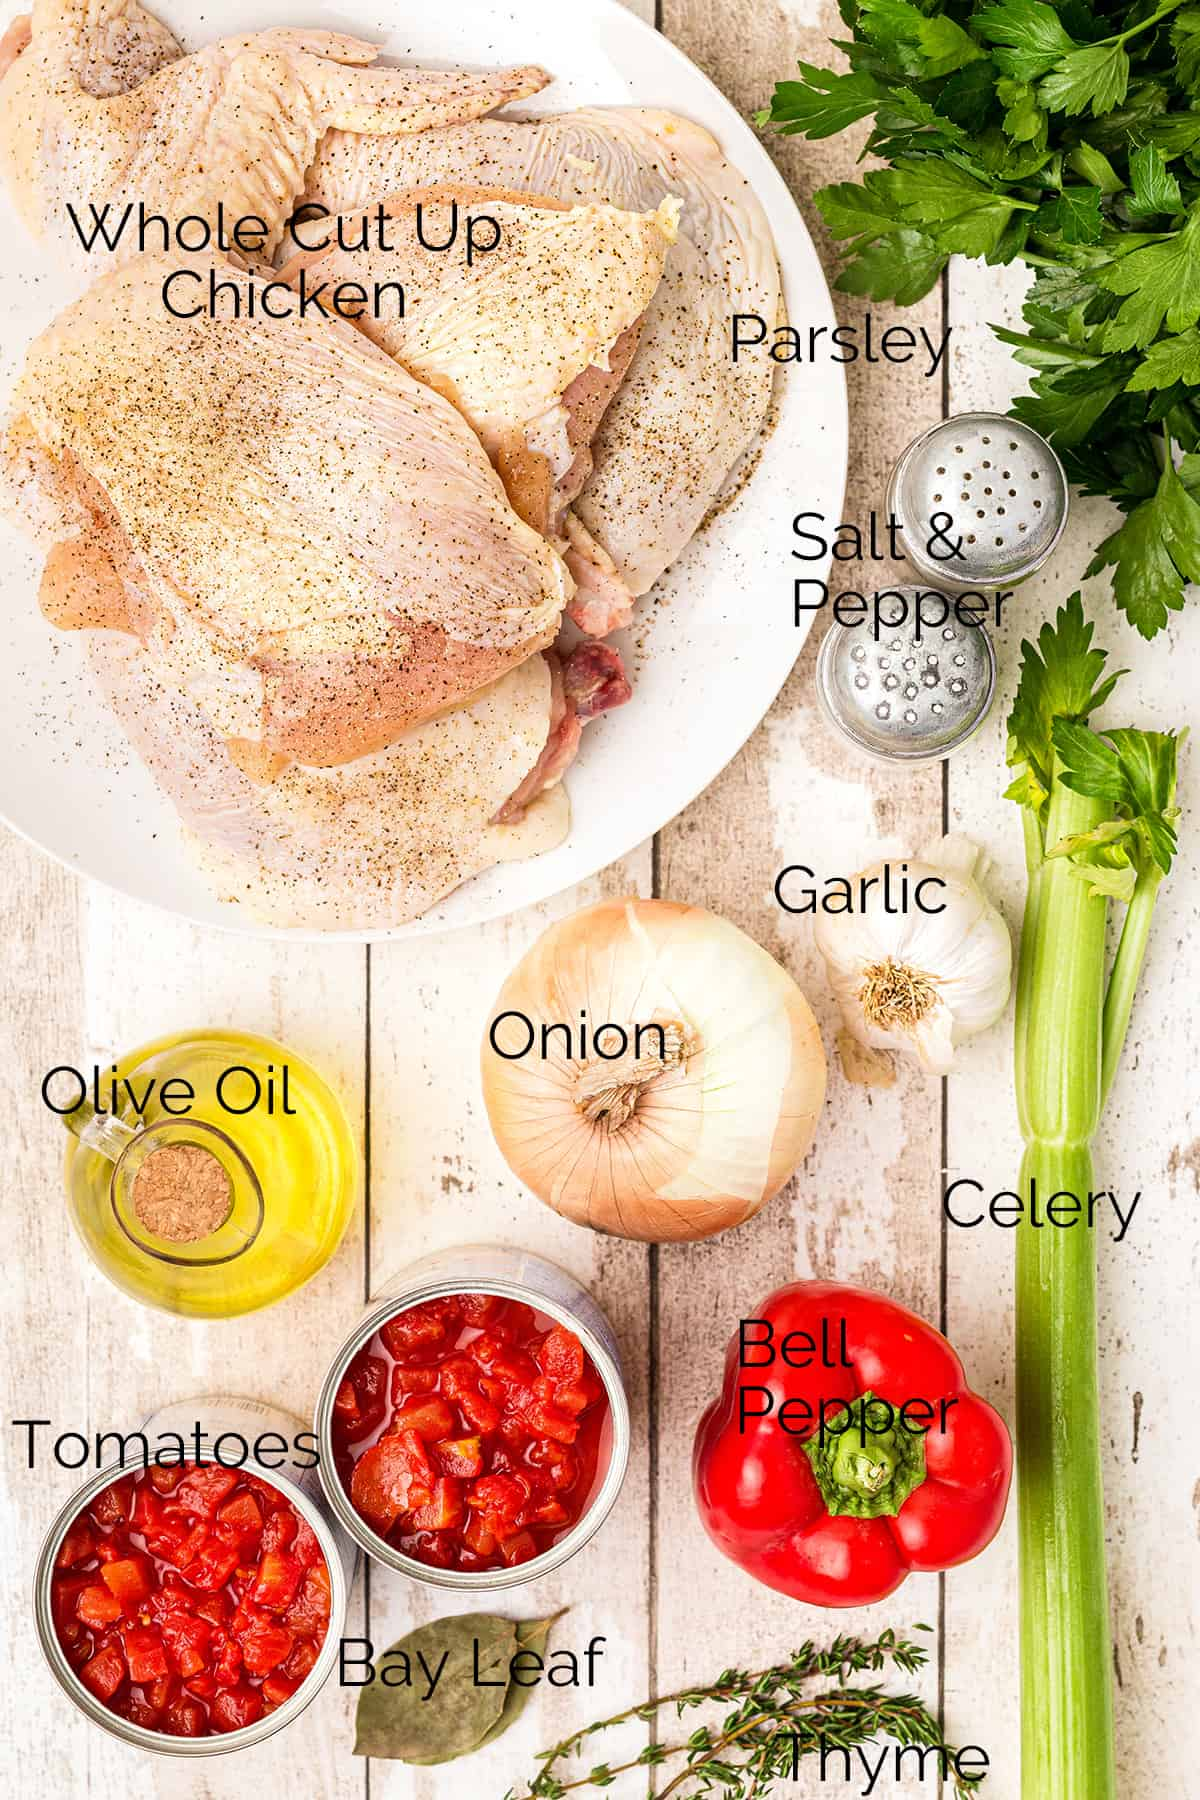 All the ingredients needed to prepare Chicken Cacciatore